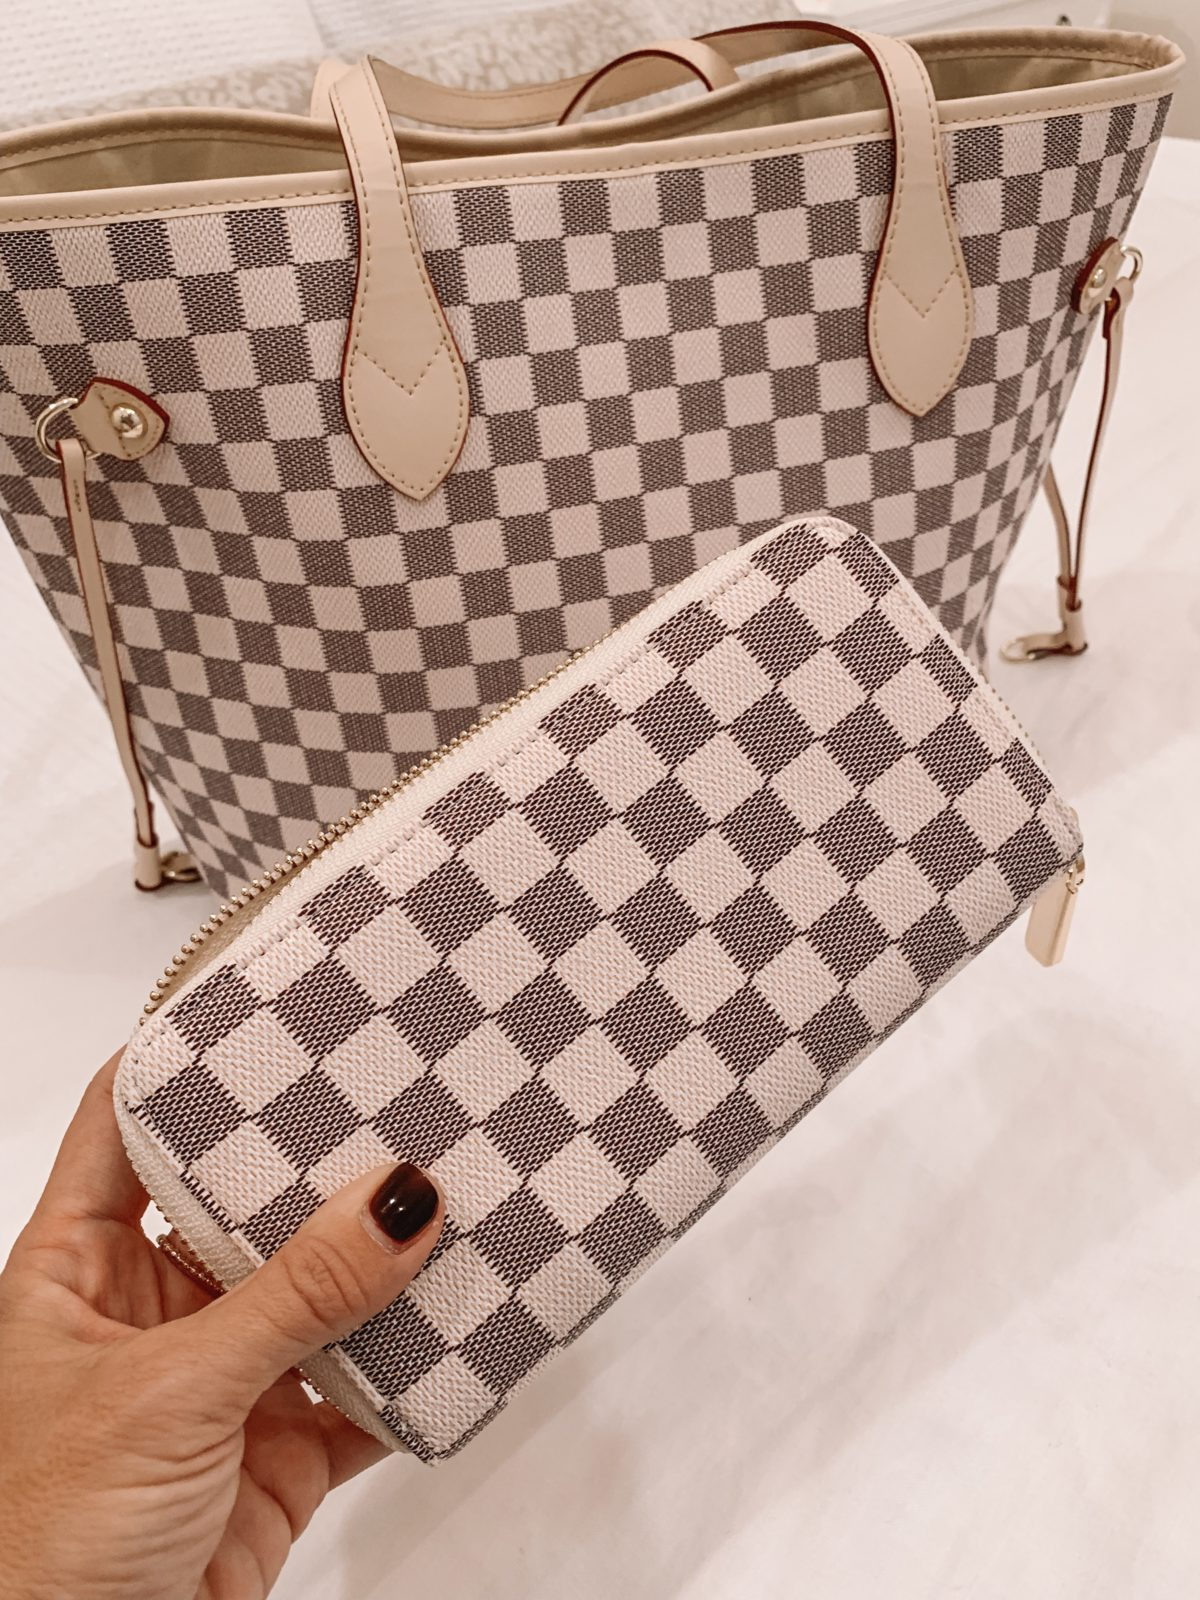 Amazon fashion haul, checkered tote and wallet